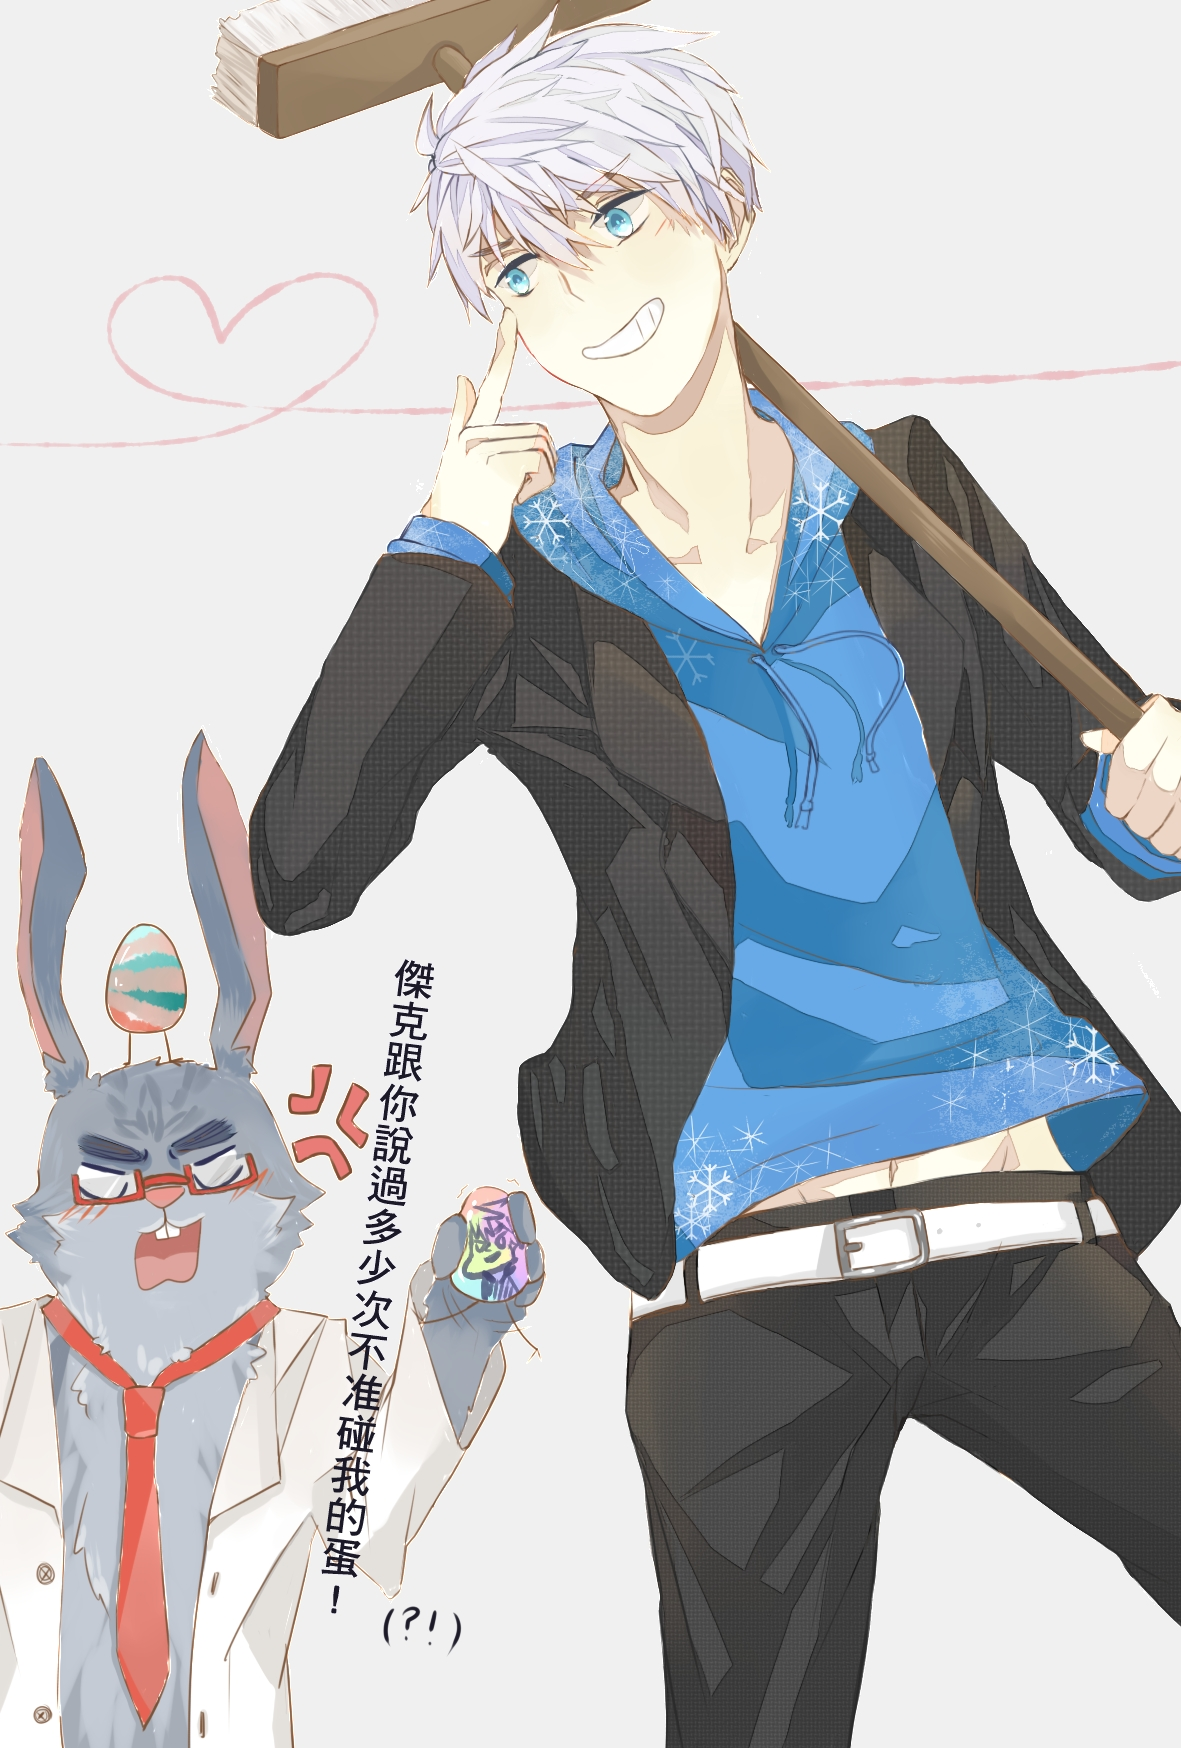 E. Aster Bunnymund, Fanart | page 3 - Zerochan Anime Image Board for Human Easter Bunny Rise Of The Guardians  284dqh